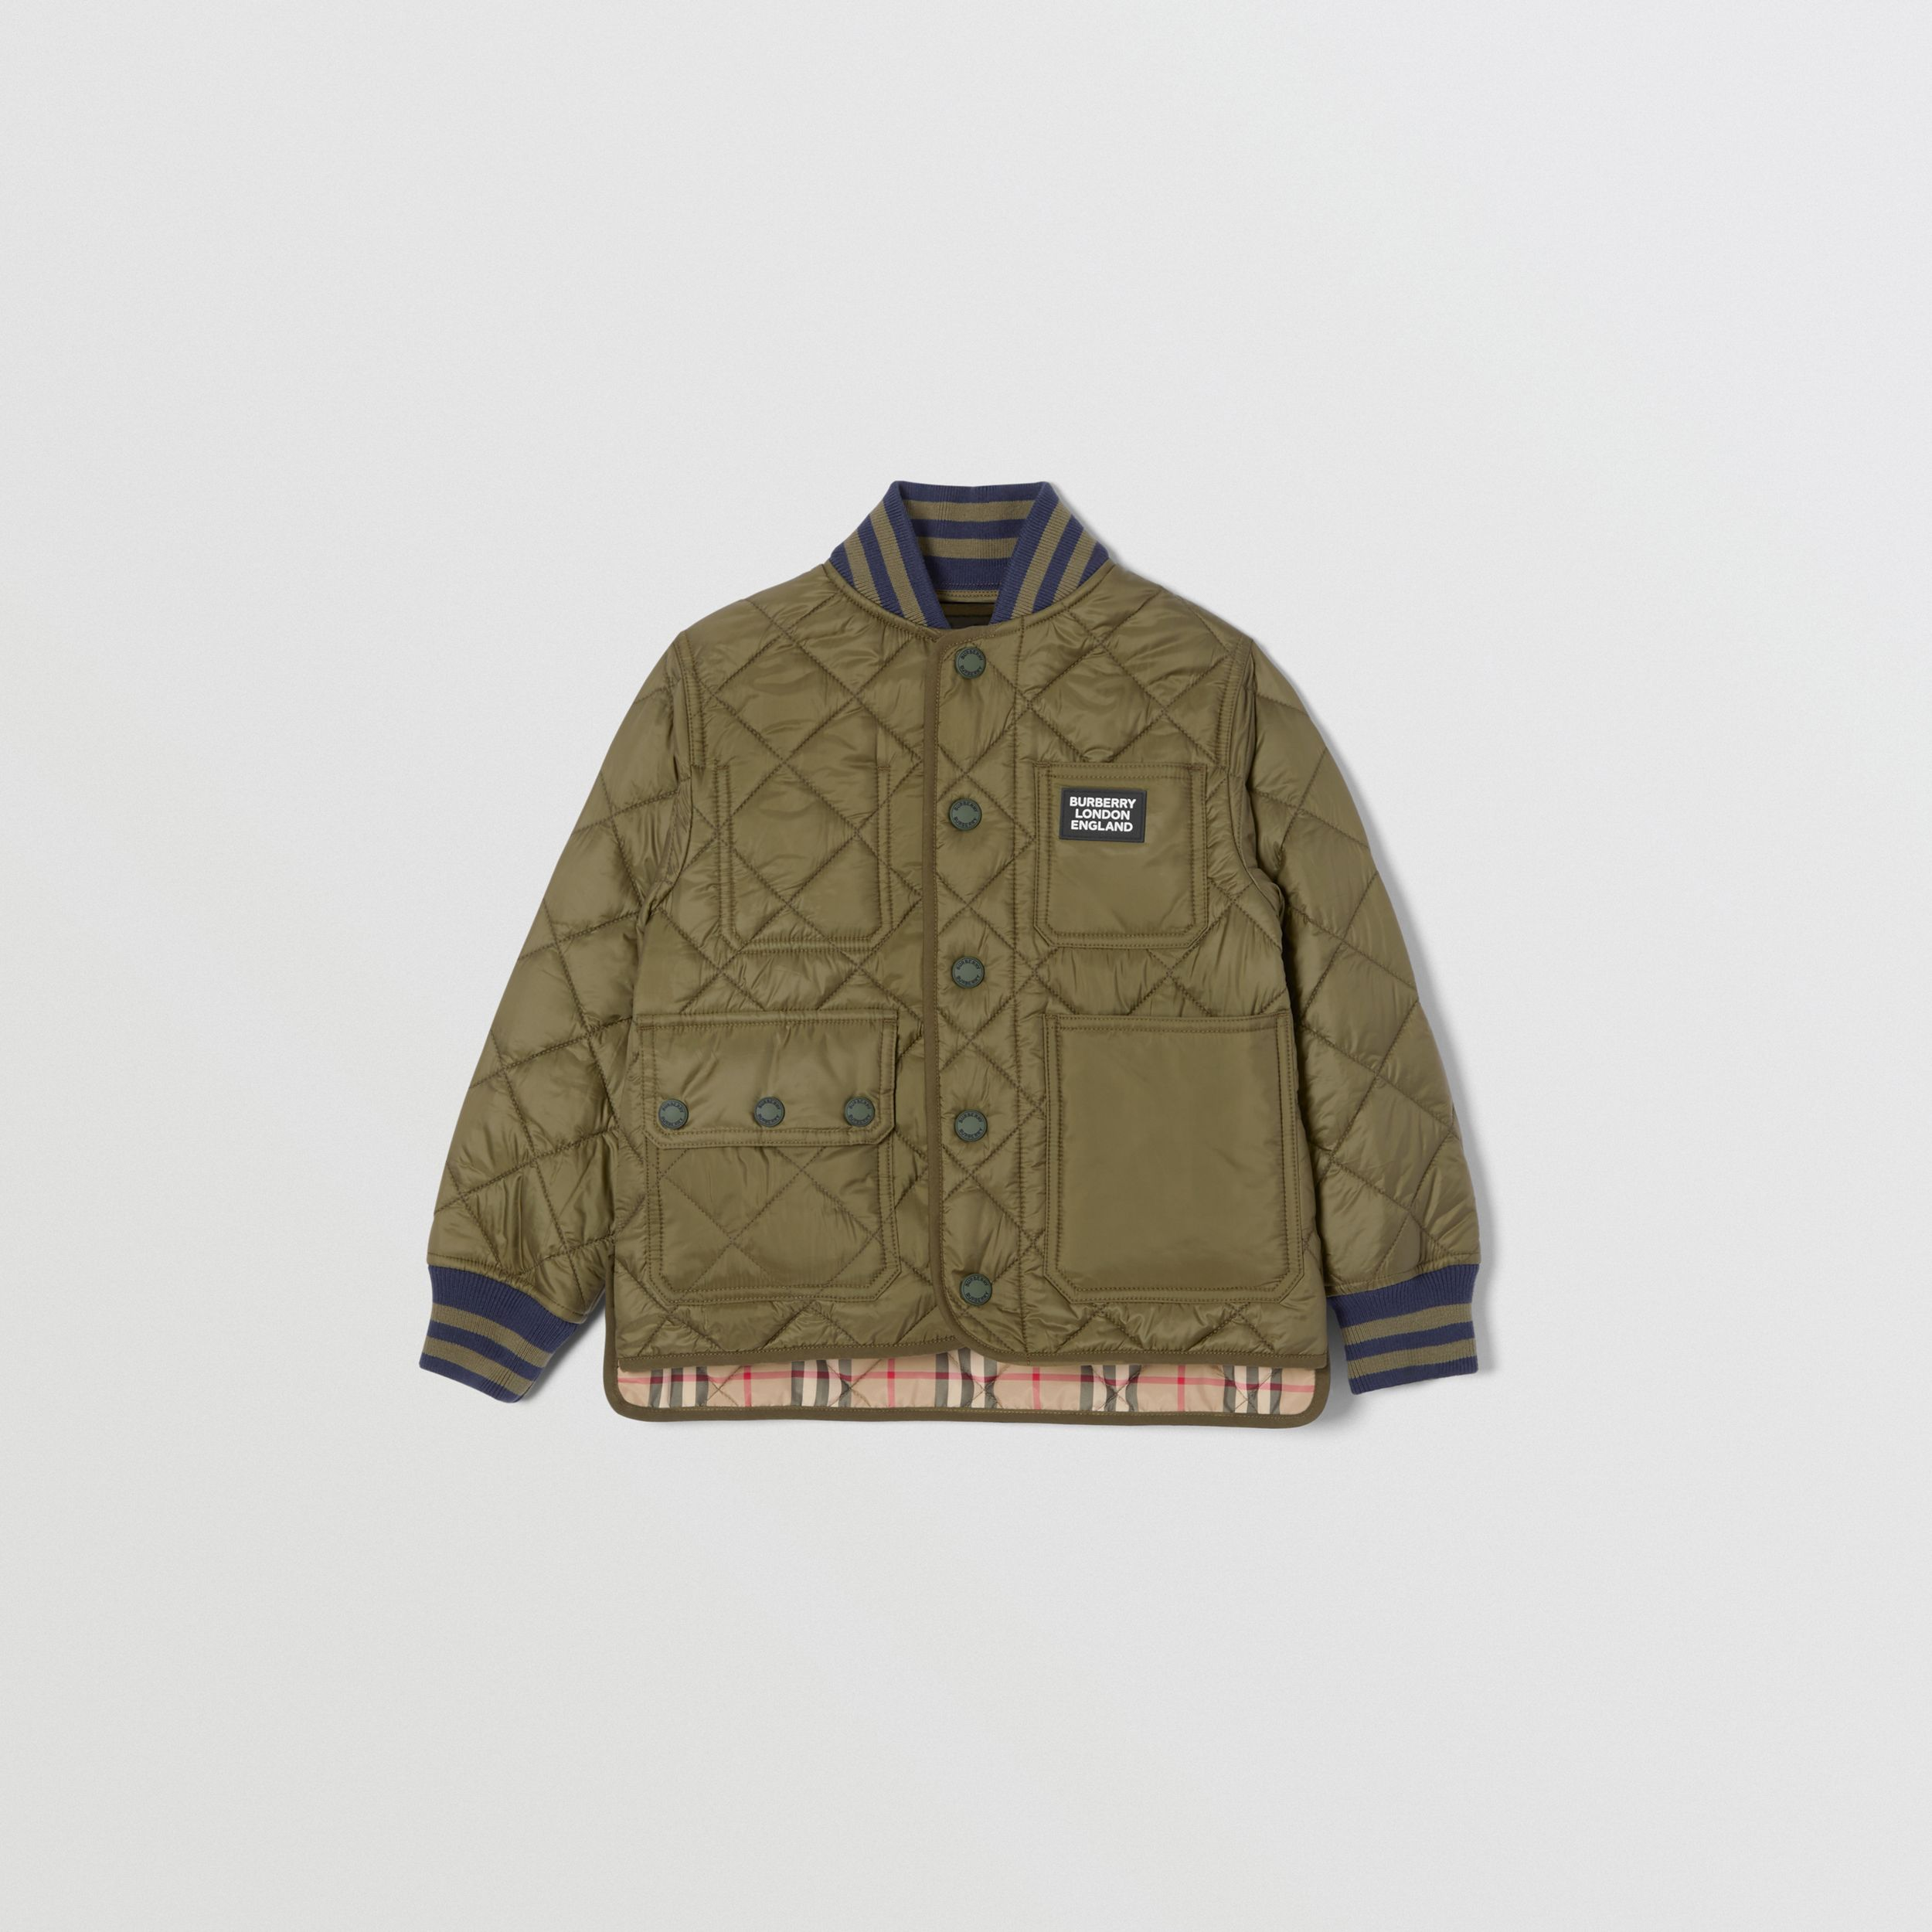 Recycled Polyester Diamond Quilted Jacket in Oregano | Burberry - 1